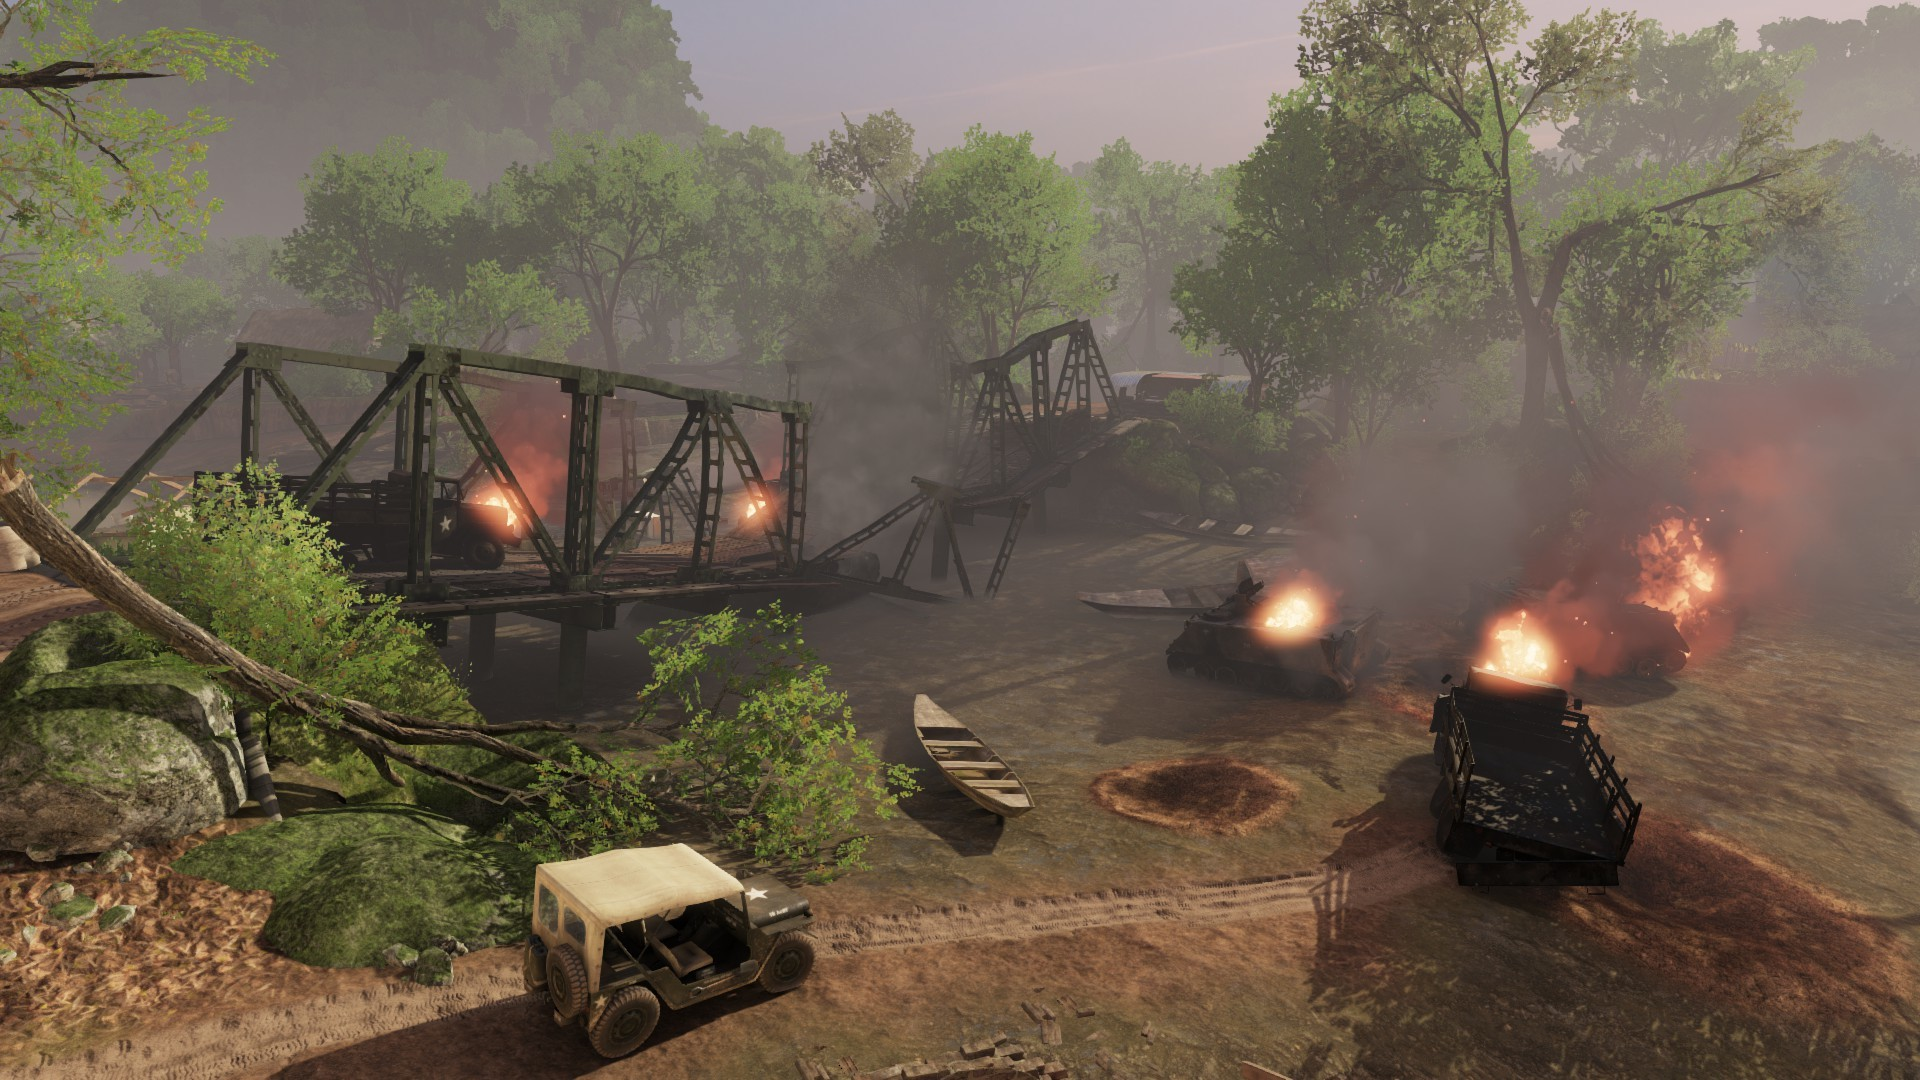 Nov 28, 2017 Midweek Madness - Rising Storm 2: Vietnam